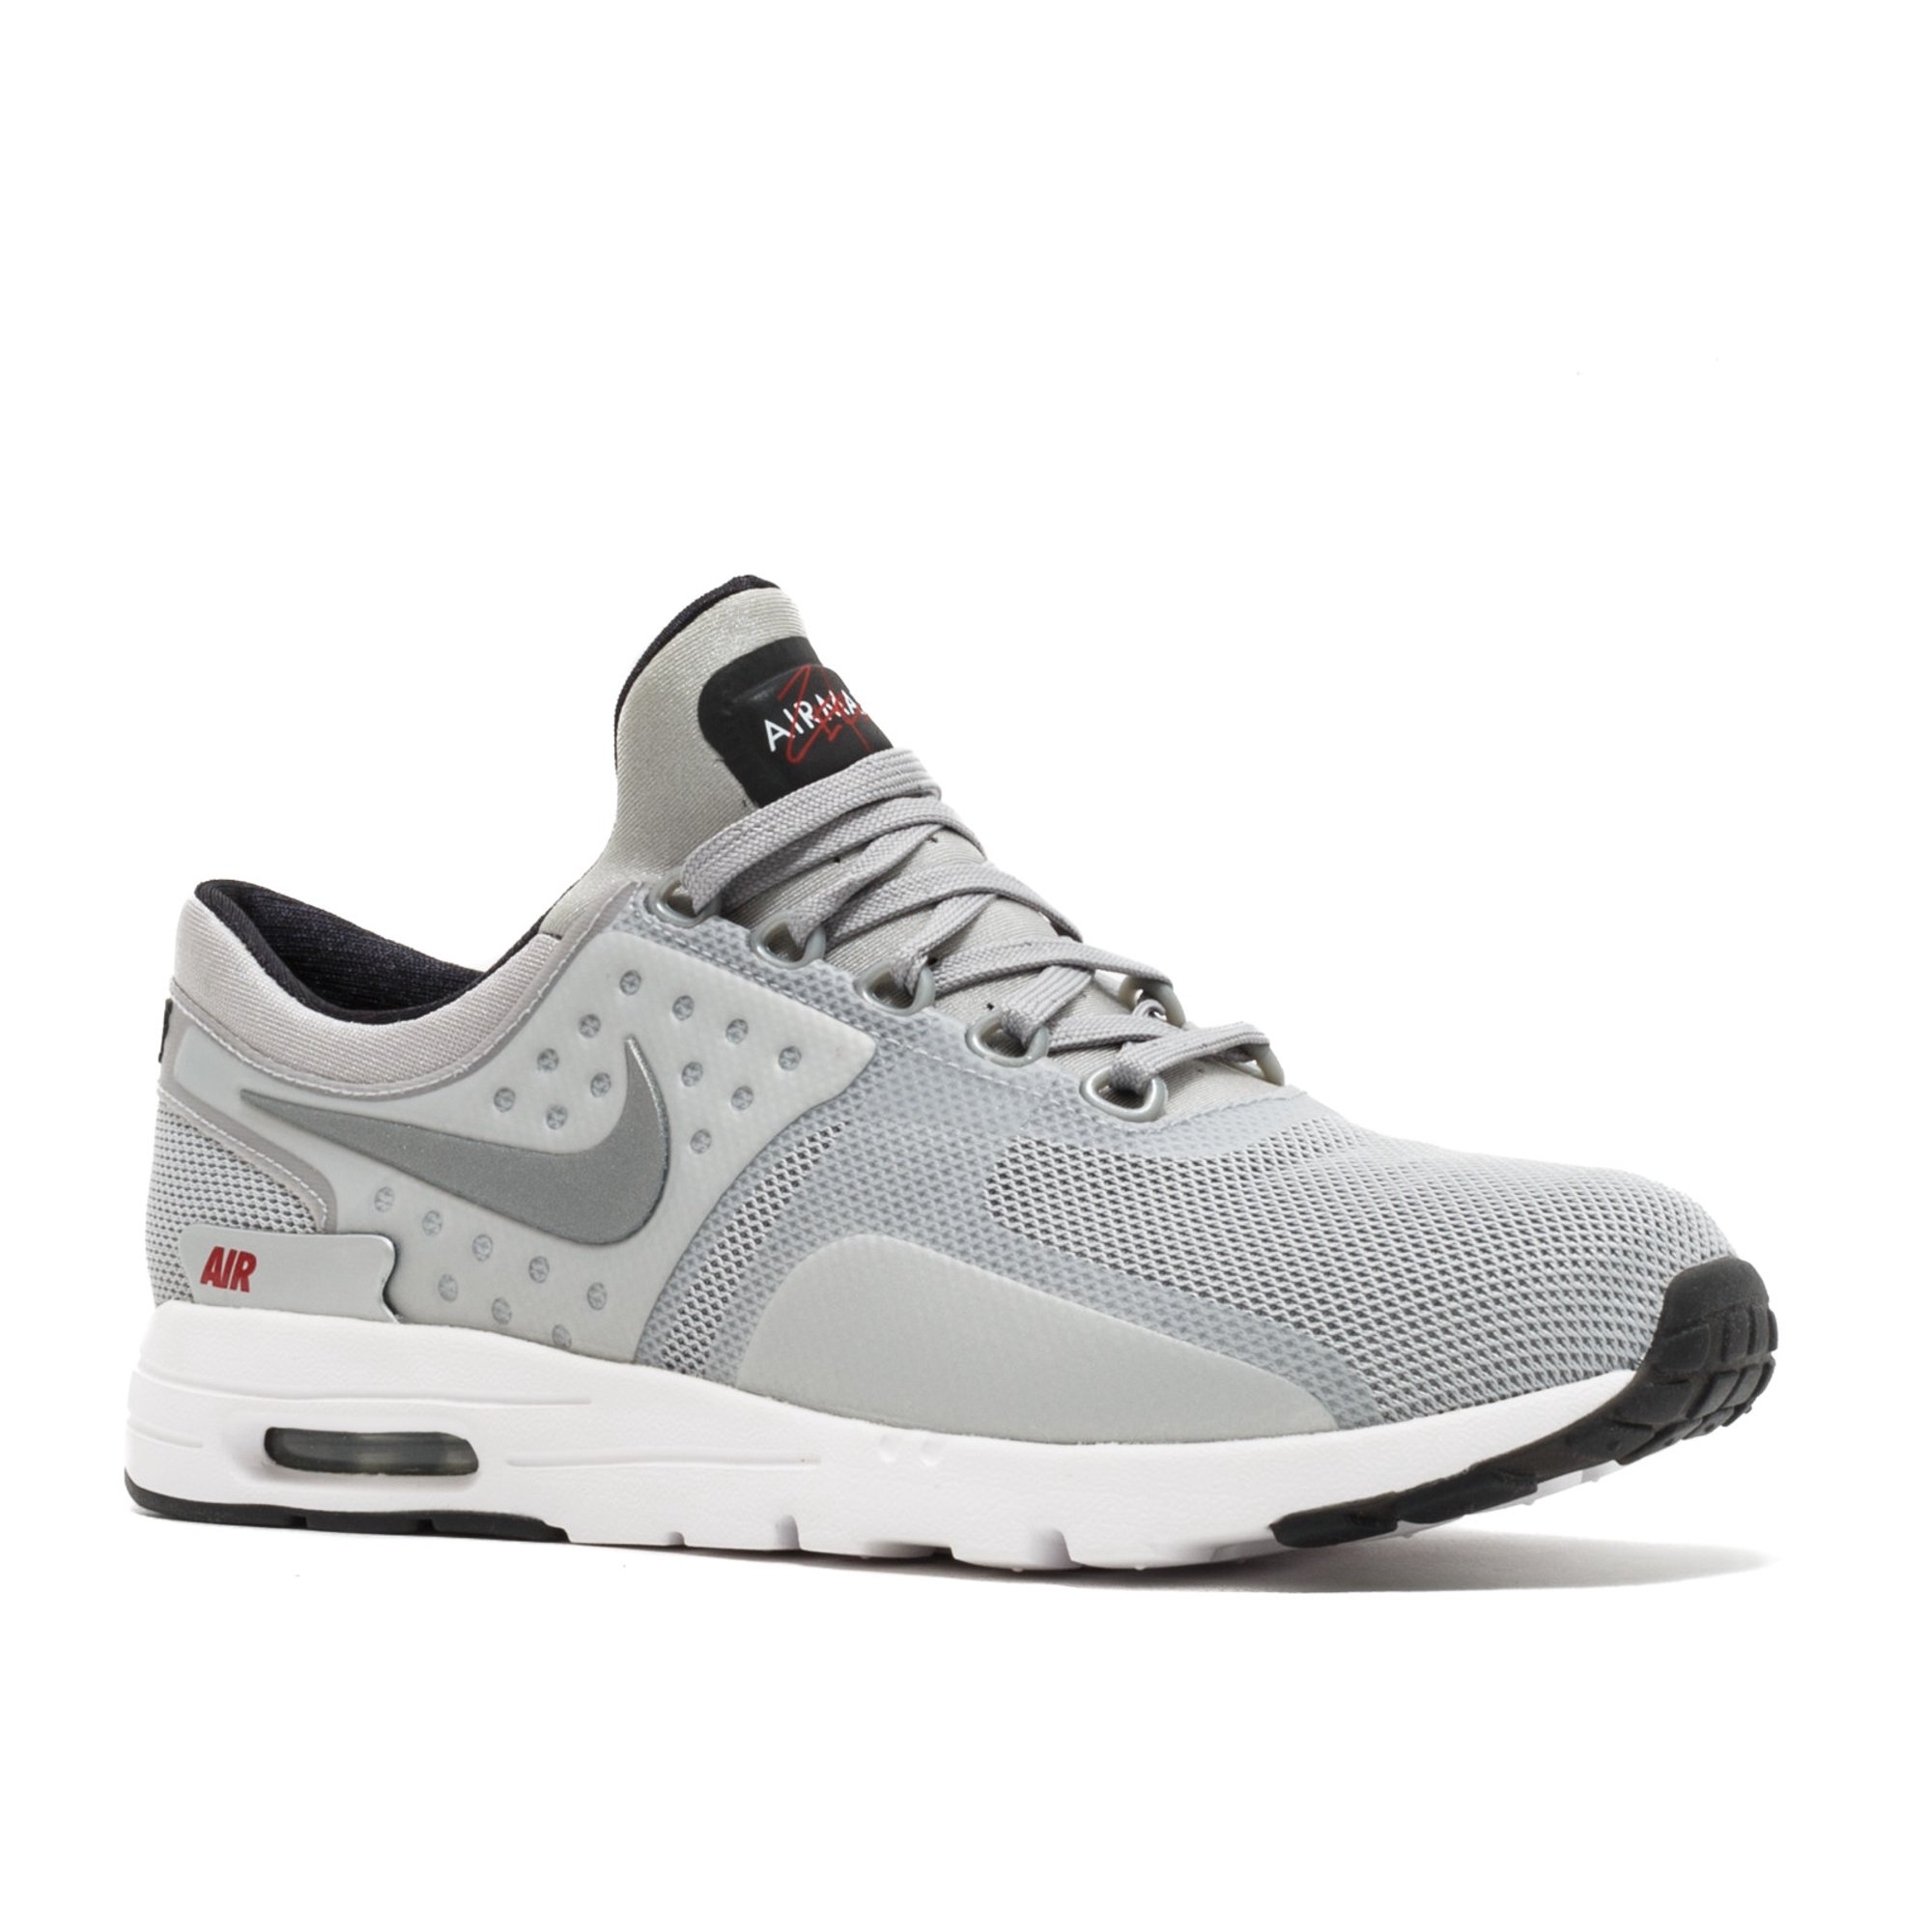 online store 48a7f 1f597 W Nike Air Max Zero Qs 'Silver Bullet' - 863700-002 - Size W5.5